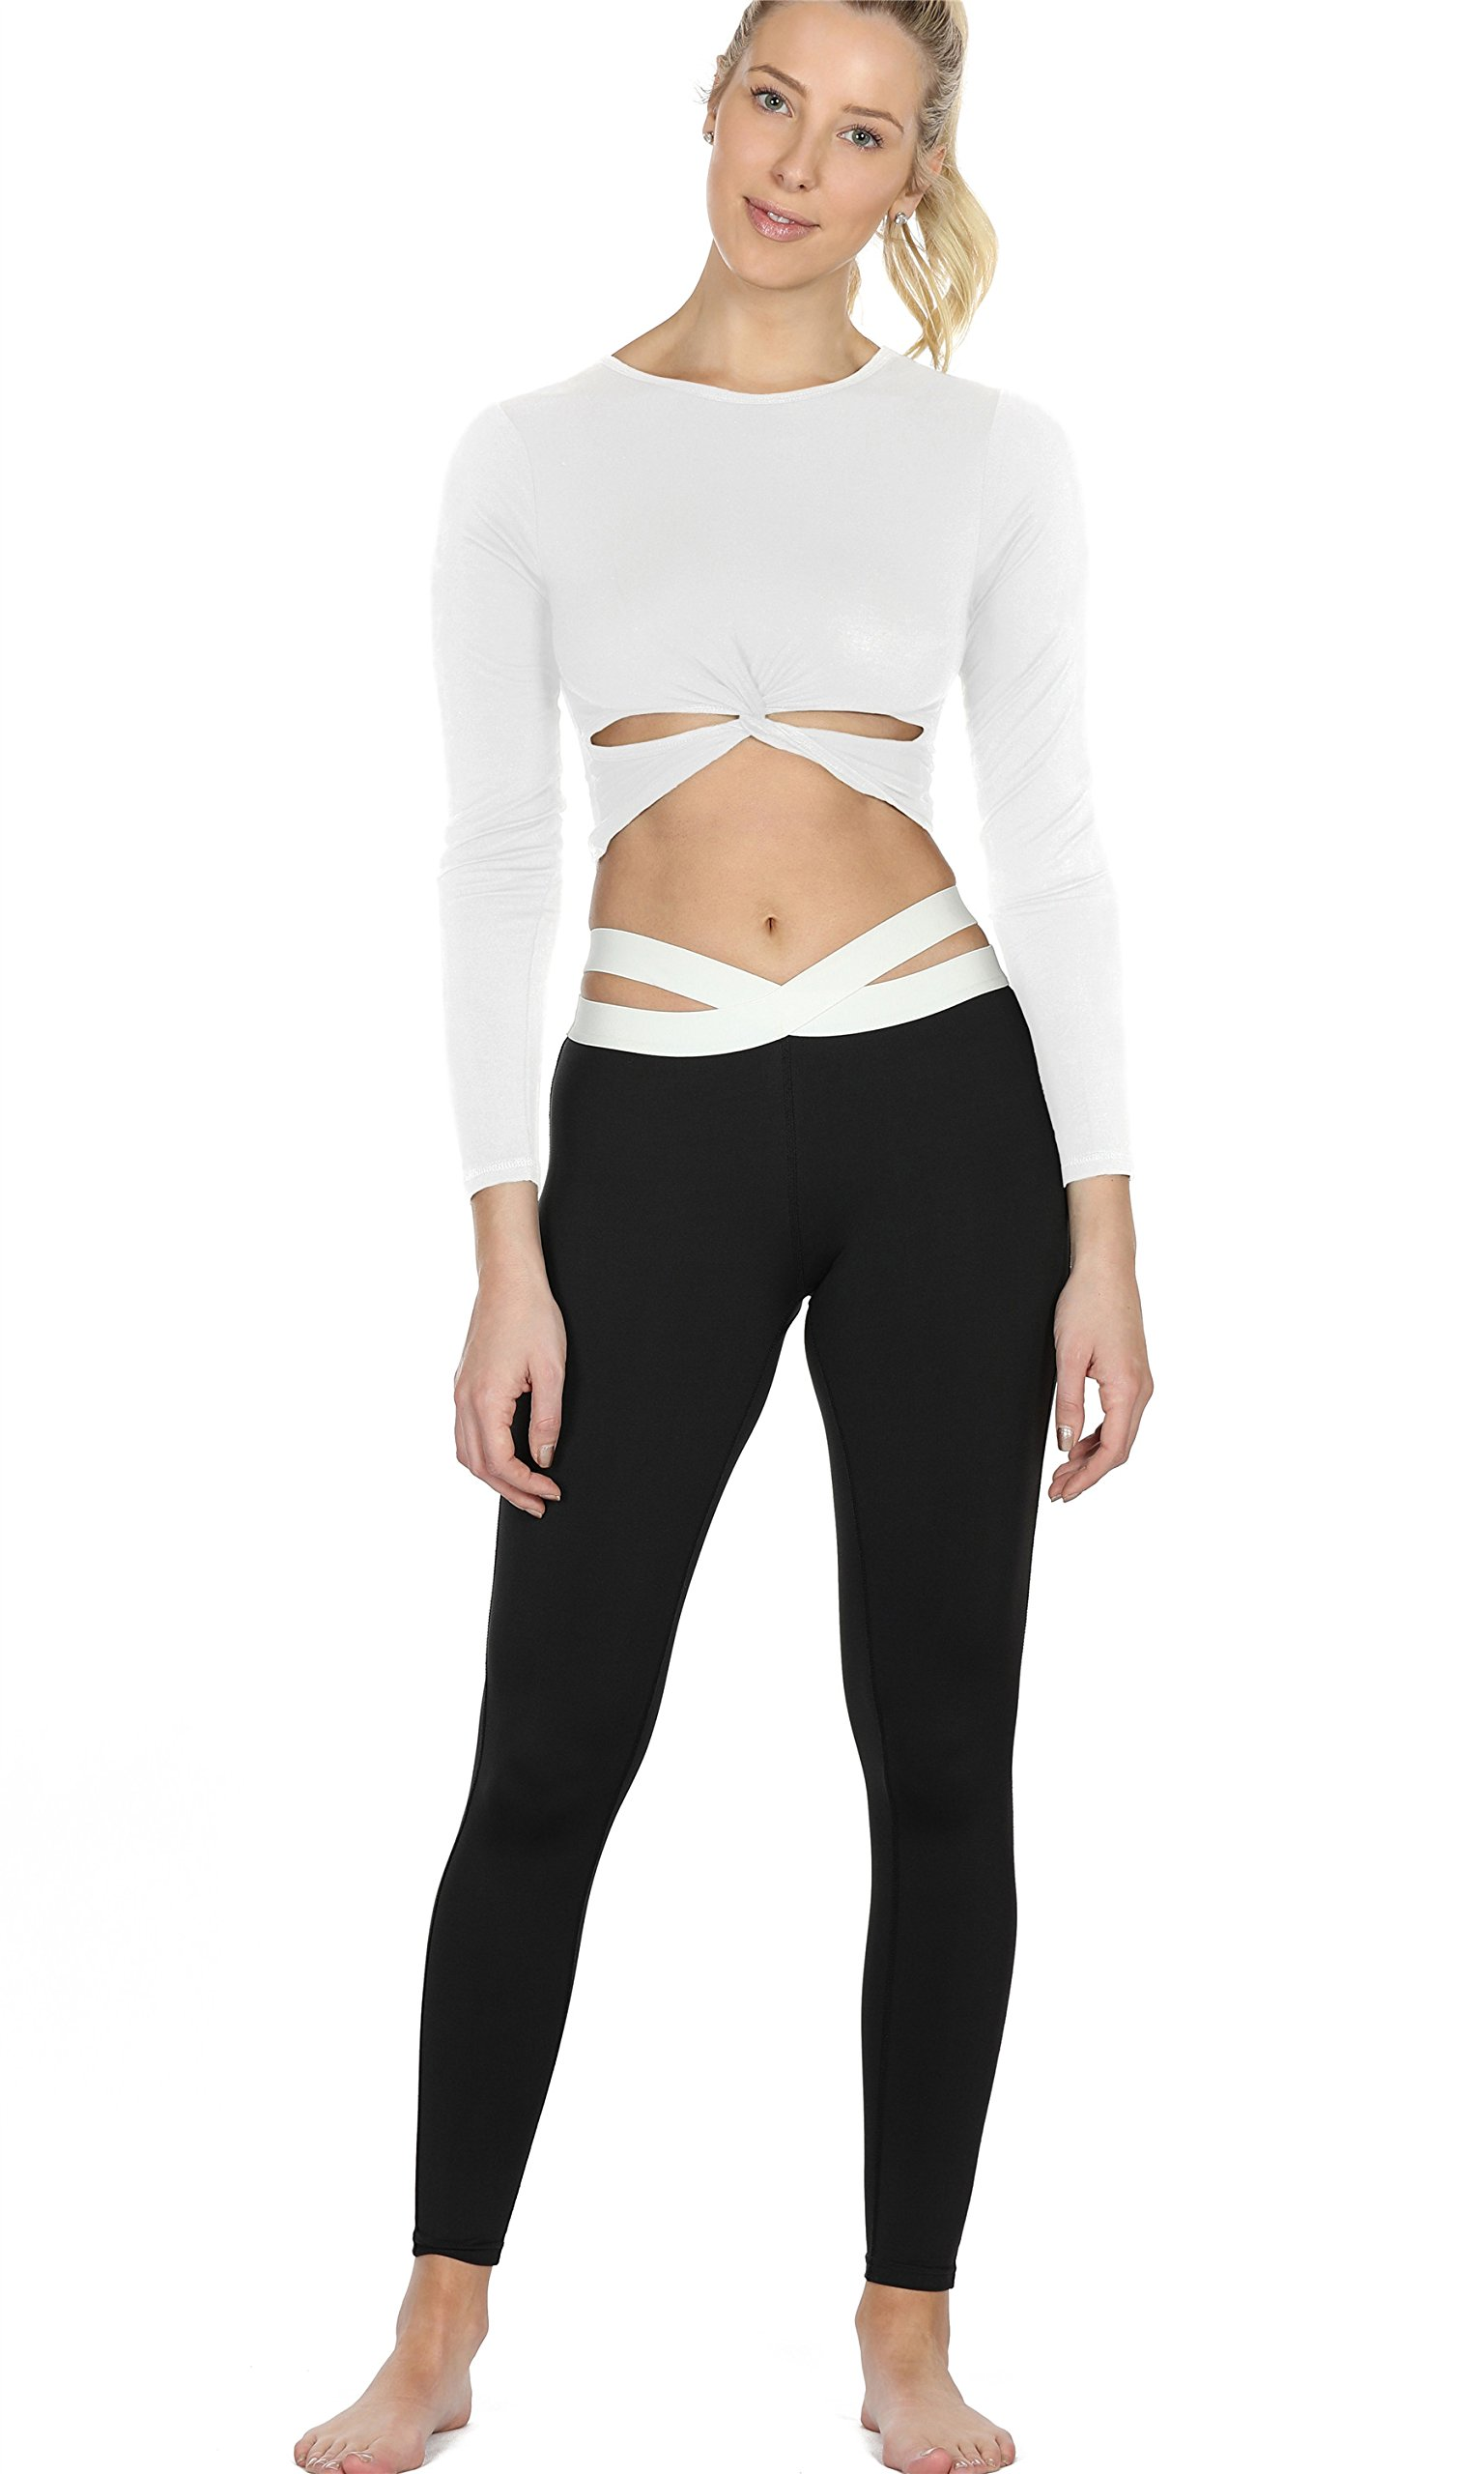 icyzone Long Sleeve Crop Tops for Women - Activewear Workout Yoga Gym Lounge T Shirts (White, S)